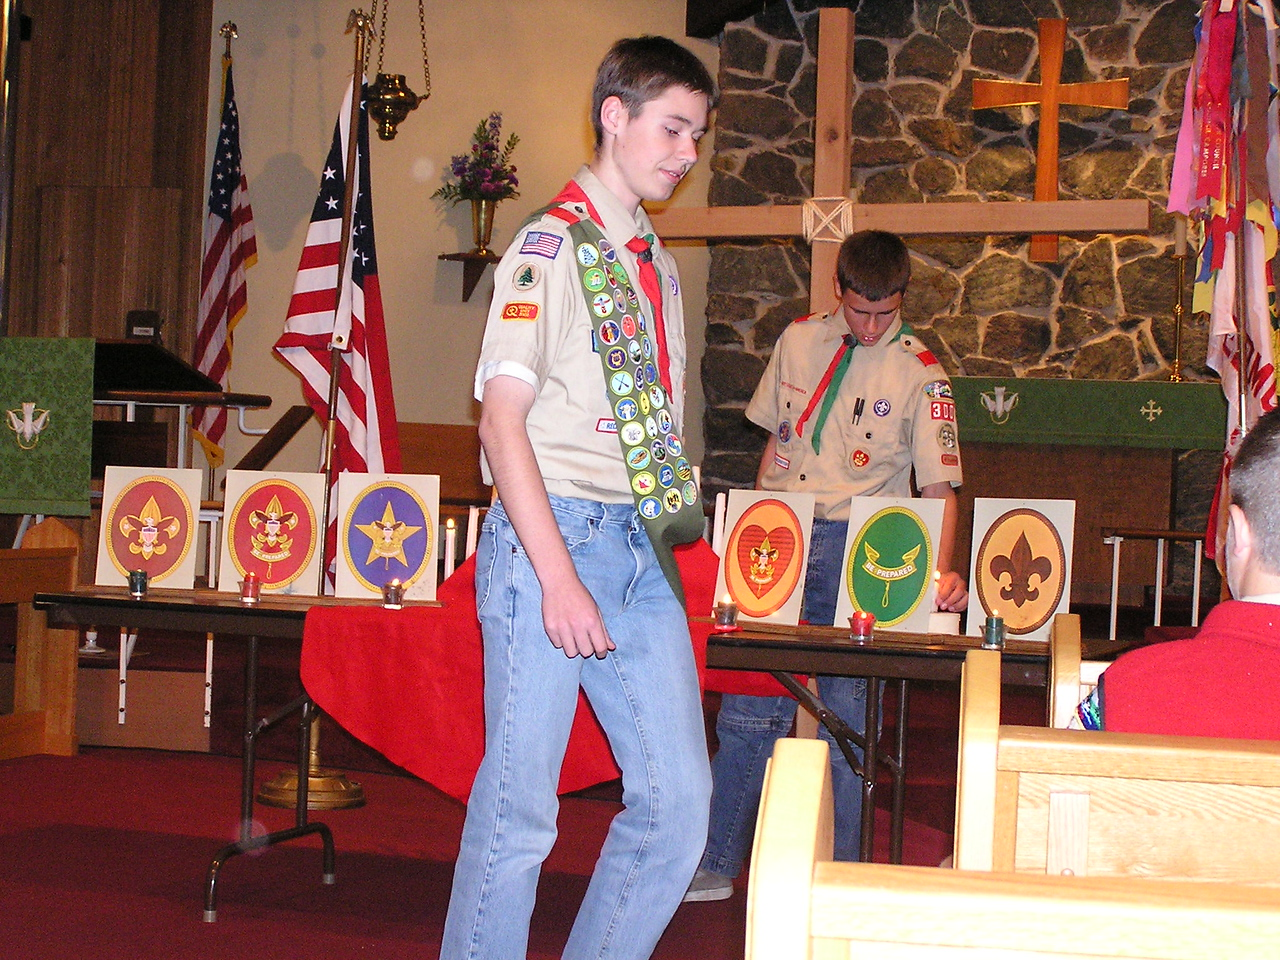 03-09-08 Kevin, Scouts 008